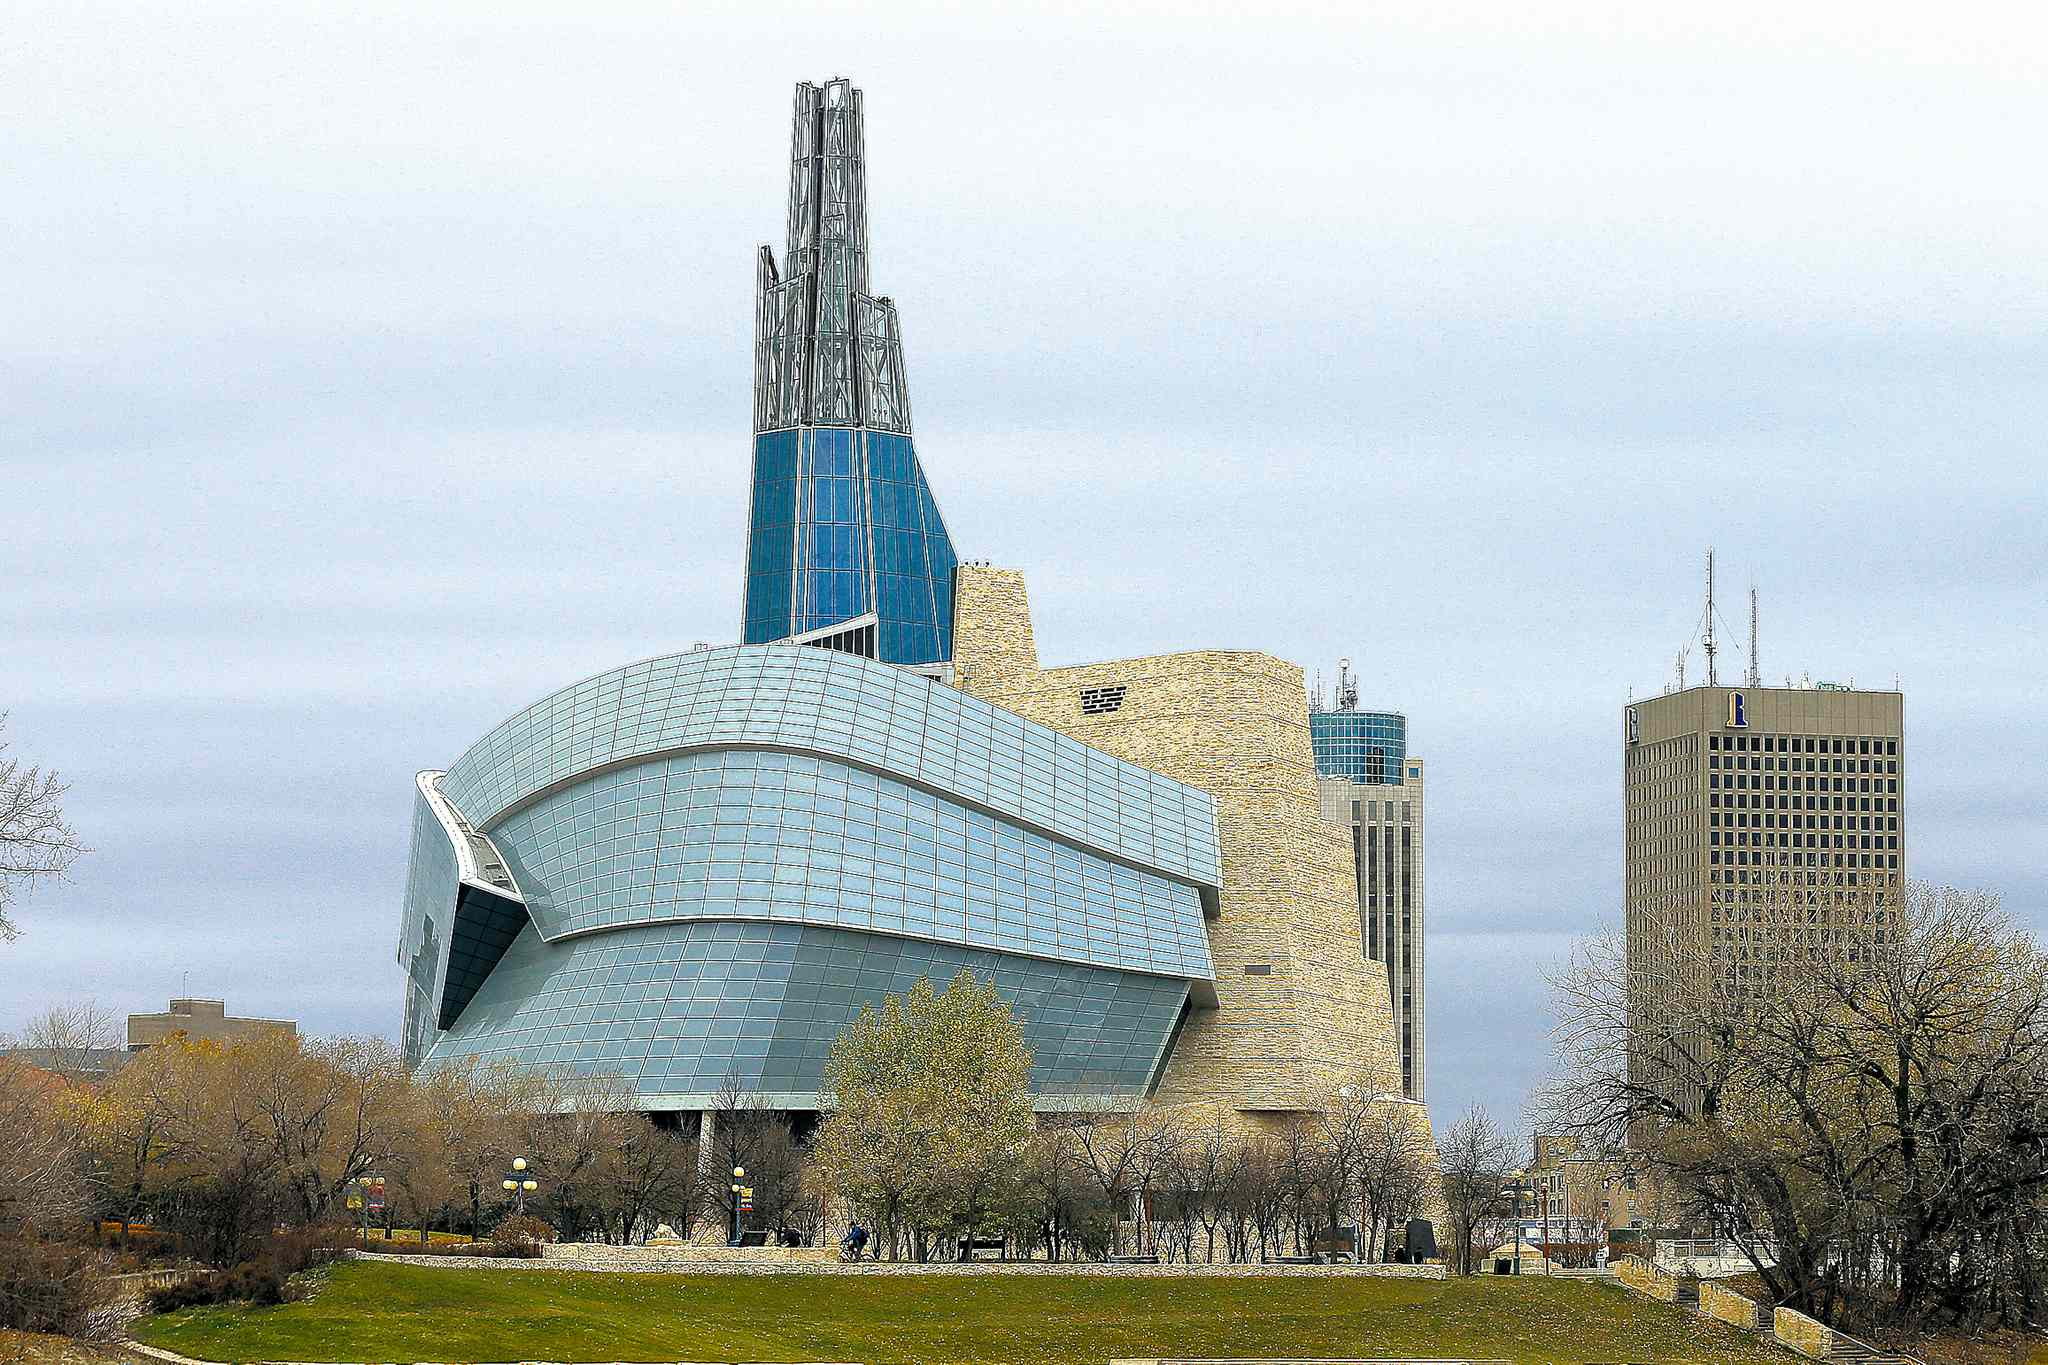 KEN GIGLIOTTI / WINNIPEG FREE PRESS filesThe Canadian Museum for Human Rights